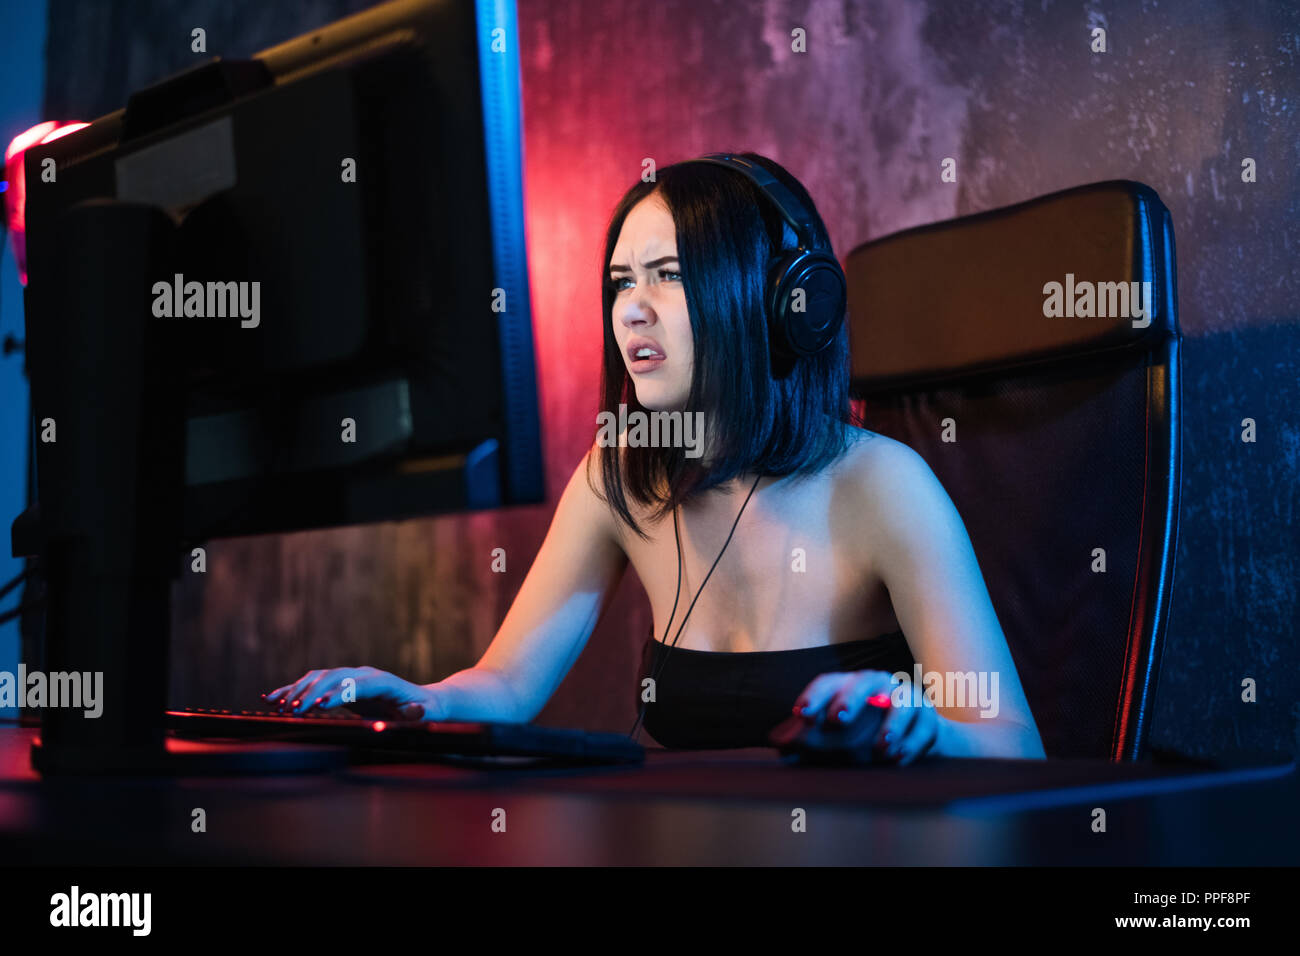 Portrait of a worried woman using a PC in the night at home. Stock Photo